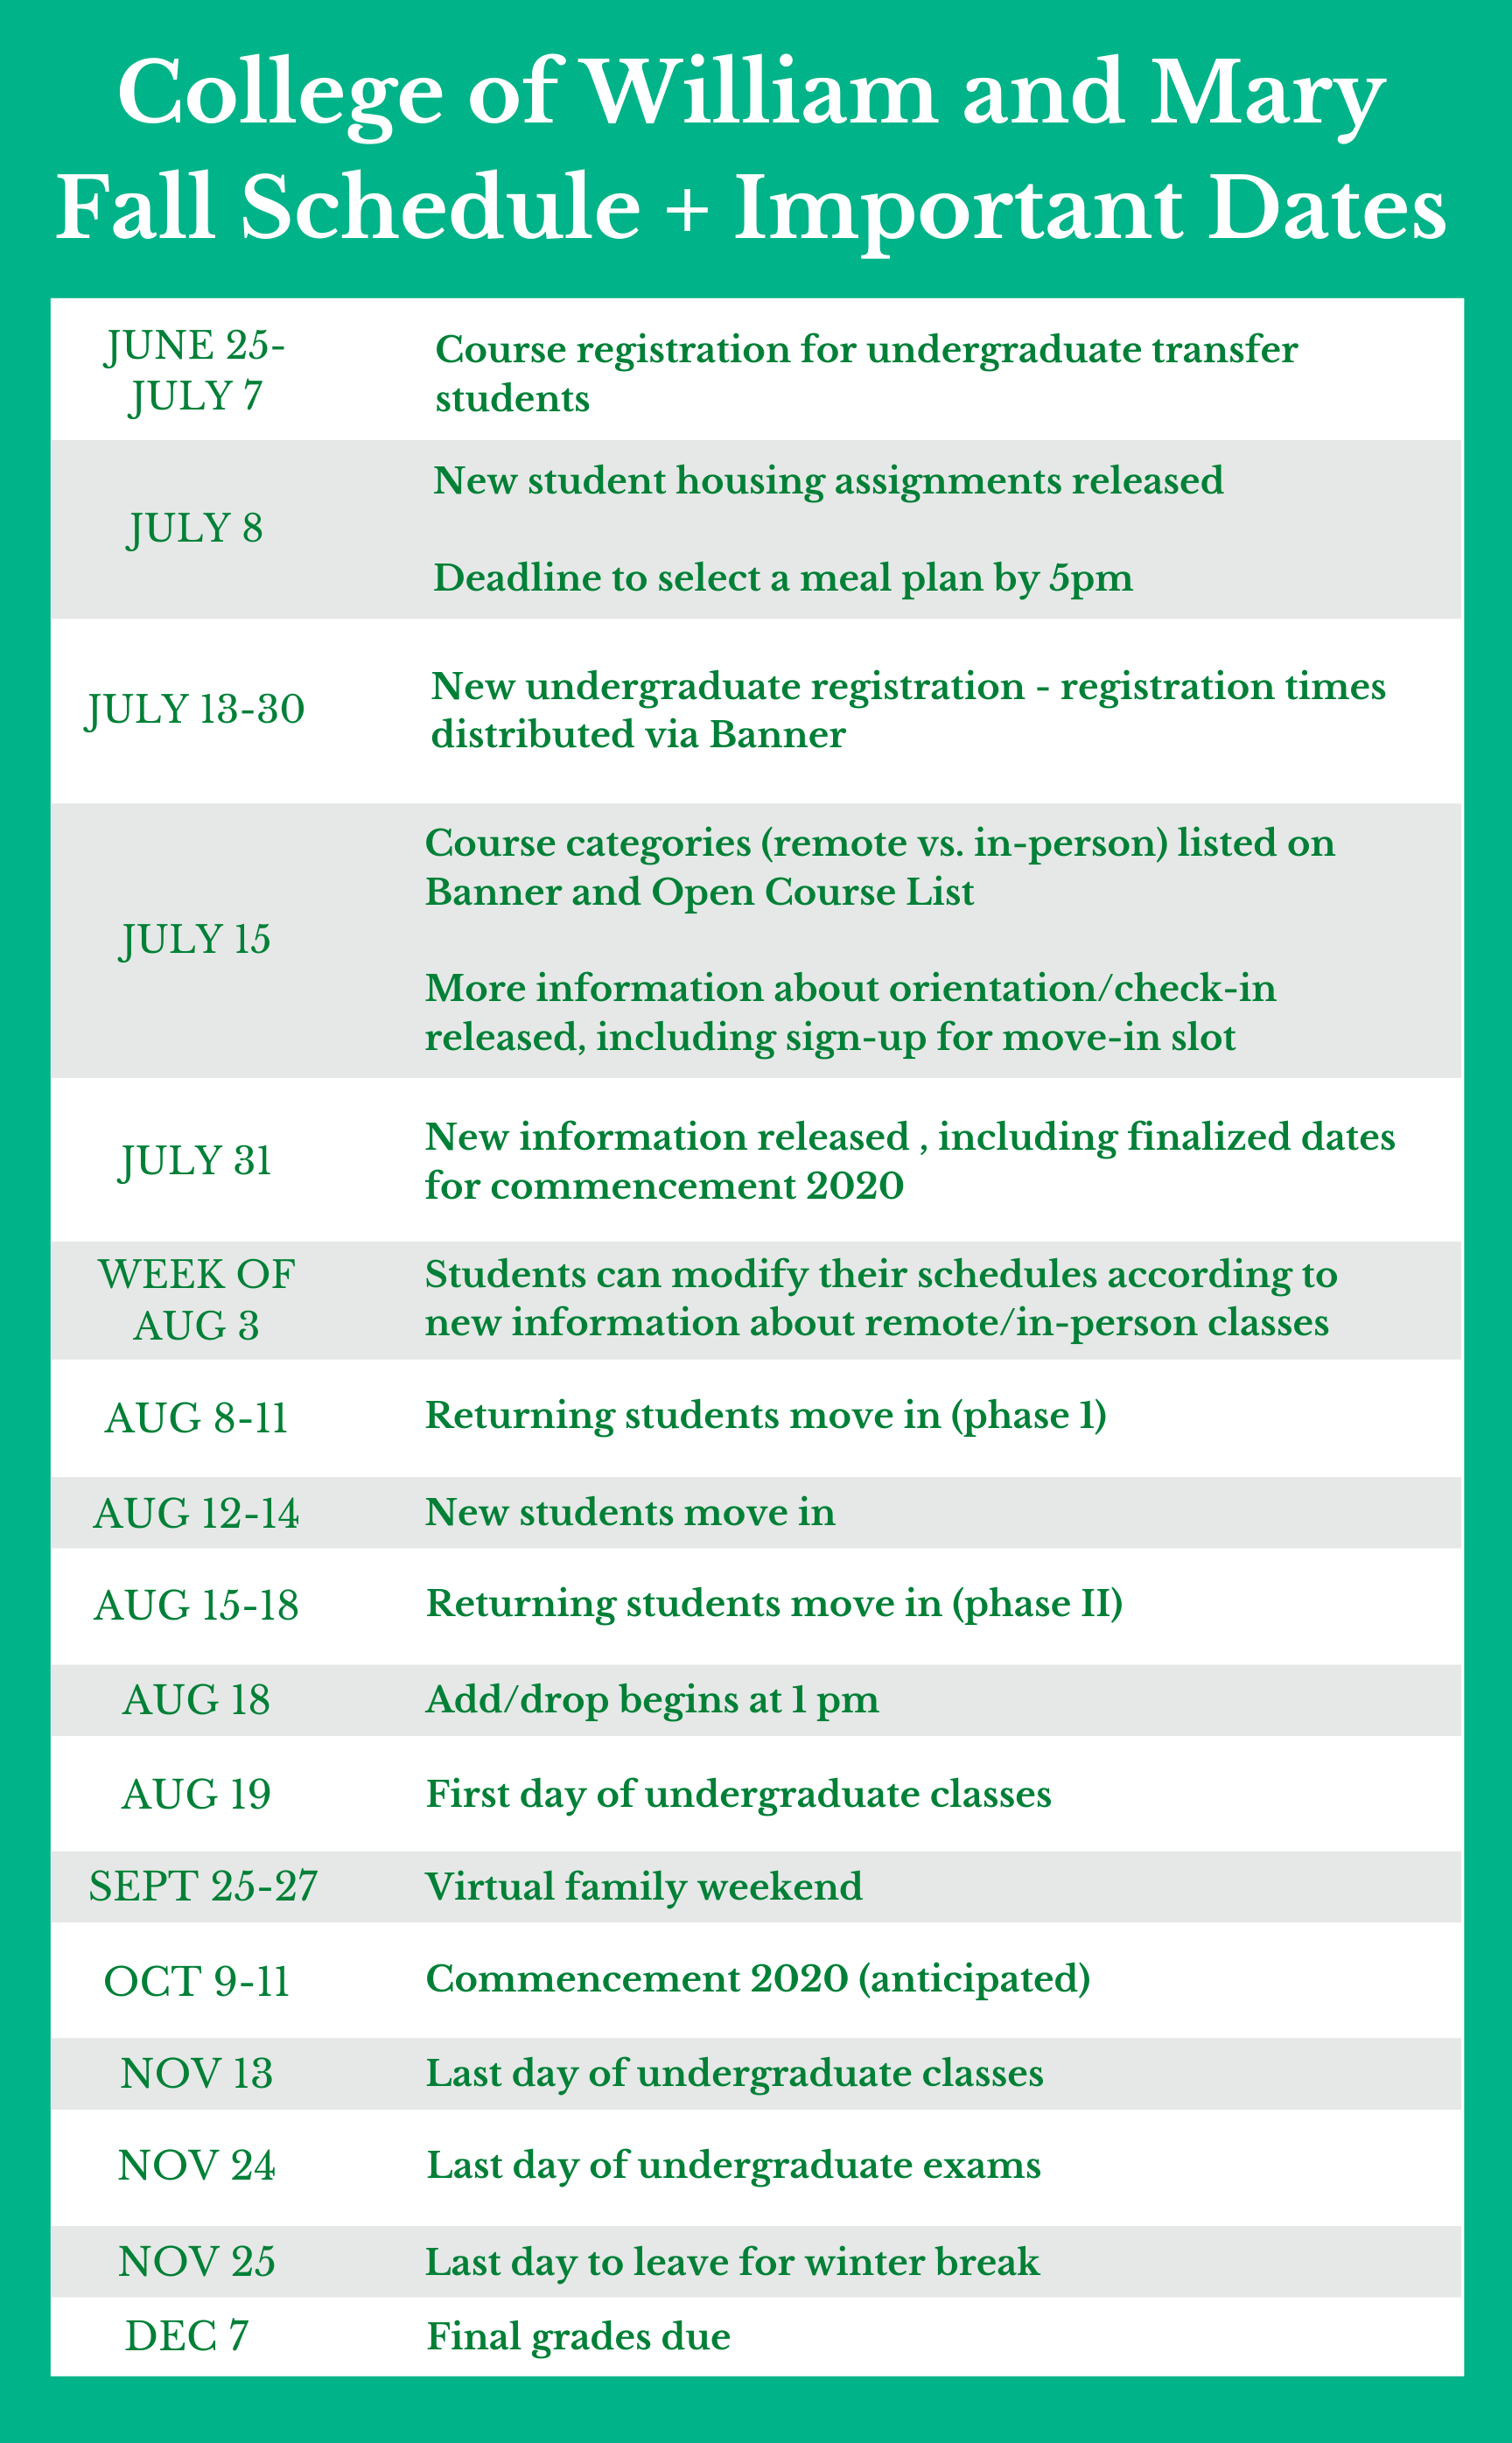 June 25-July 7 – Registration for undergraduate Transfer Students July 8 - New student housing assignments open July 8 (5pm) - Deadline to select a meal plan July 13-July 30 – New undergraduates registration -- check your time ticket in Banner! July 15 – Course categories (remote vs. in-person) will be listed on Banner and Open Course List July 15 - More info about orientation/check-in will be released, including signing up for a move-in slot! July 31 - New info released, including finalized dates for commencement 2020 Week of August 3 – You can change your schedule (unclear how this is different from add/drop, except you're limited to 16 credits until add/drop begins) Aug 8-11 - Returning Students Phase I move in Aug 12-14 - New Students move in (for orientation) Aug 15-18 - Returning Students Phase II move in August 18 – Add/Drop begins at 1:00 p.m. August 19 – Classes begin September 25-27 - Family Weekend (virtual) October 9-11 - Commencement 2020 November 13 - Last day of classes November 24 - Last day of exams November 25 - Leave for winter break December 7 - Grades due